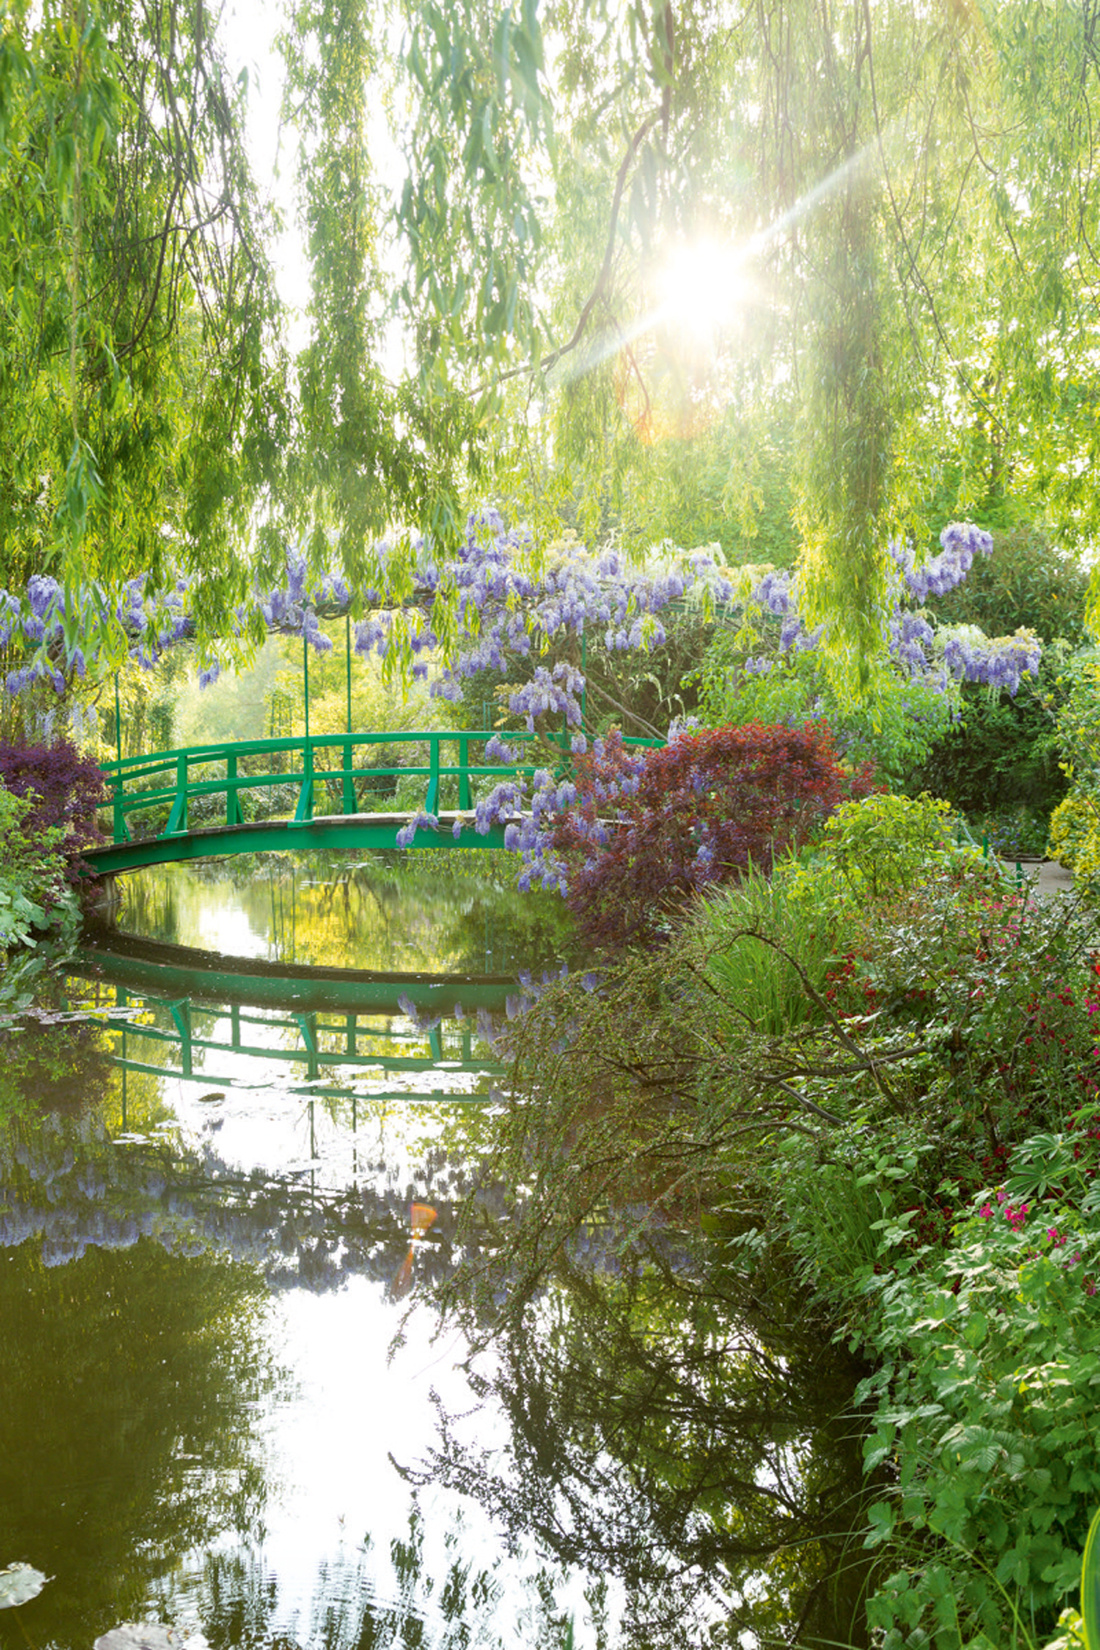 View of Monet's water garden and the Japanese footbridge, Giverny, France. Photo © Eric Sander.